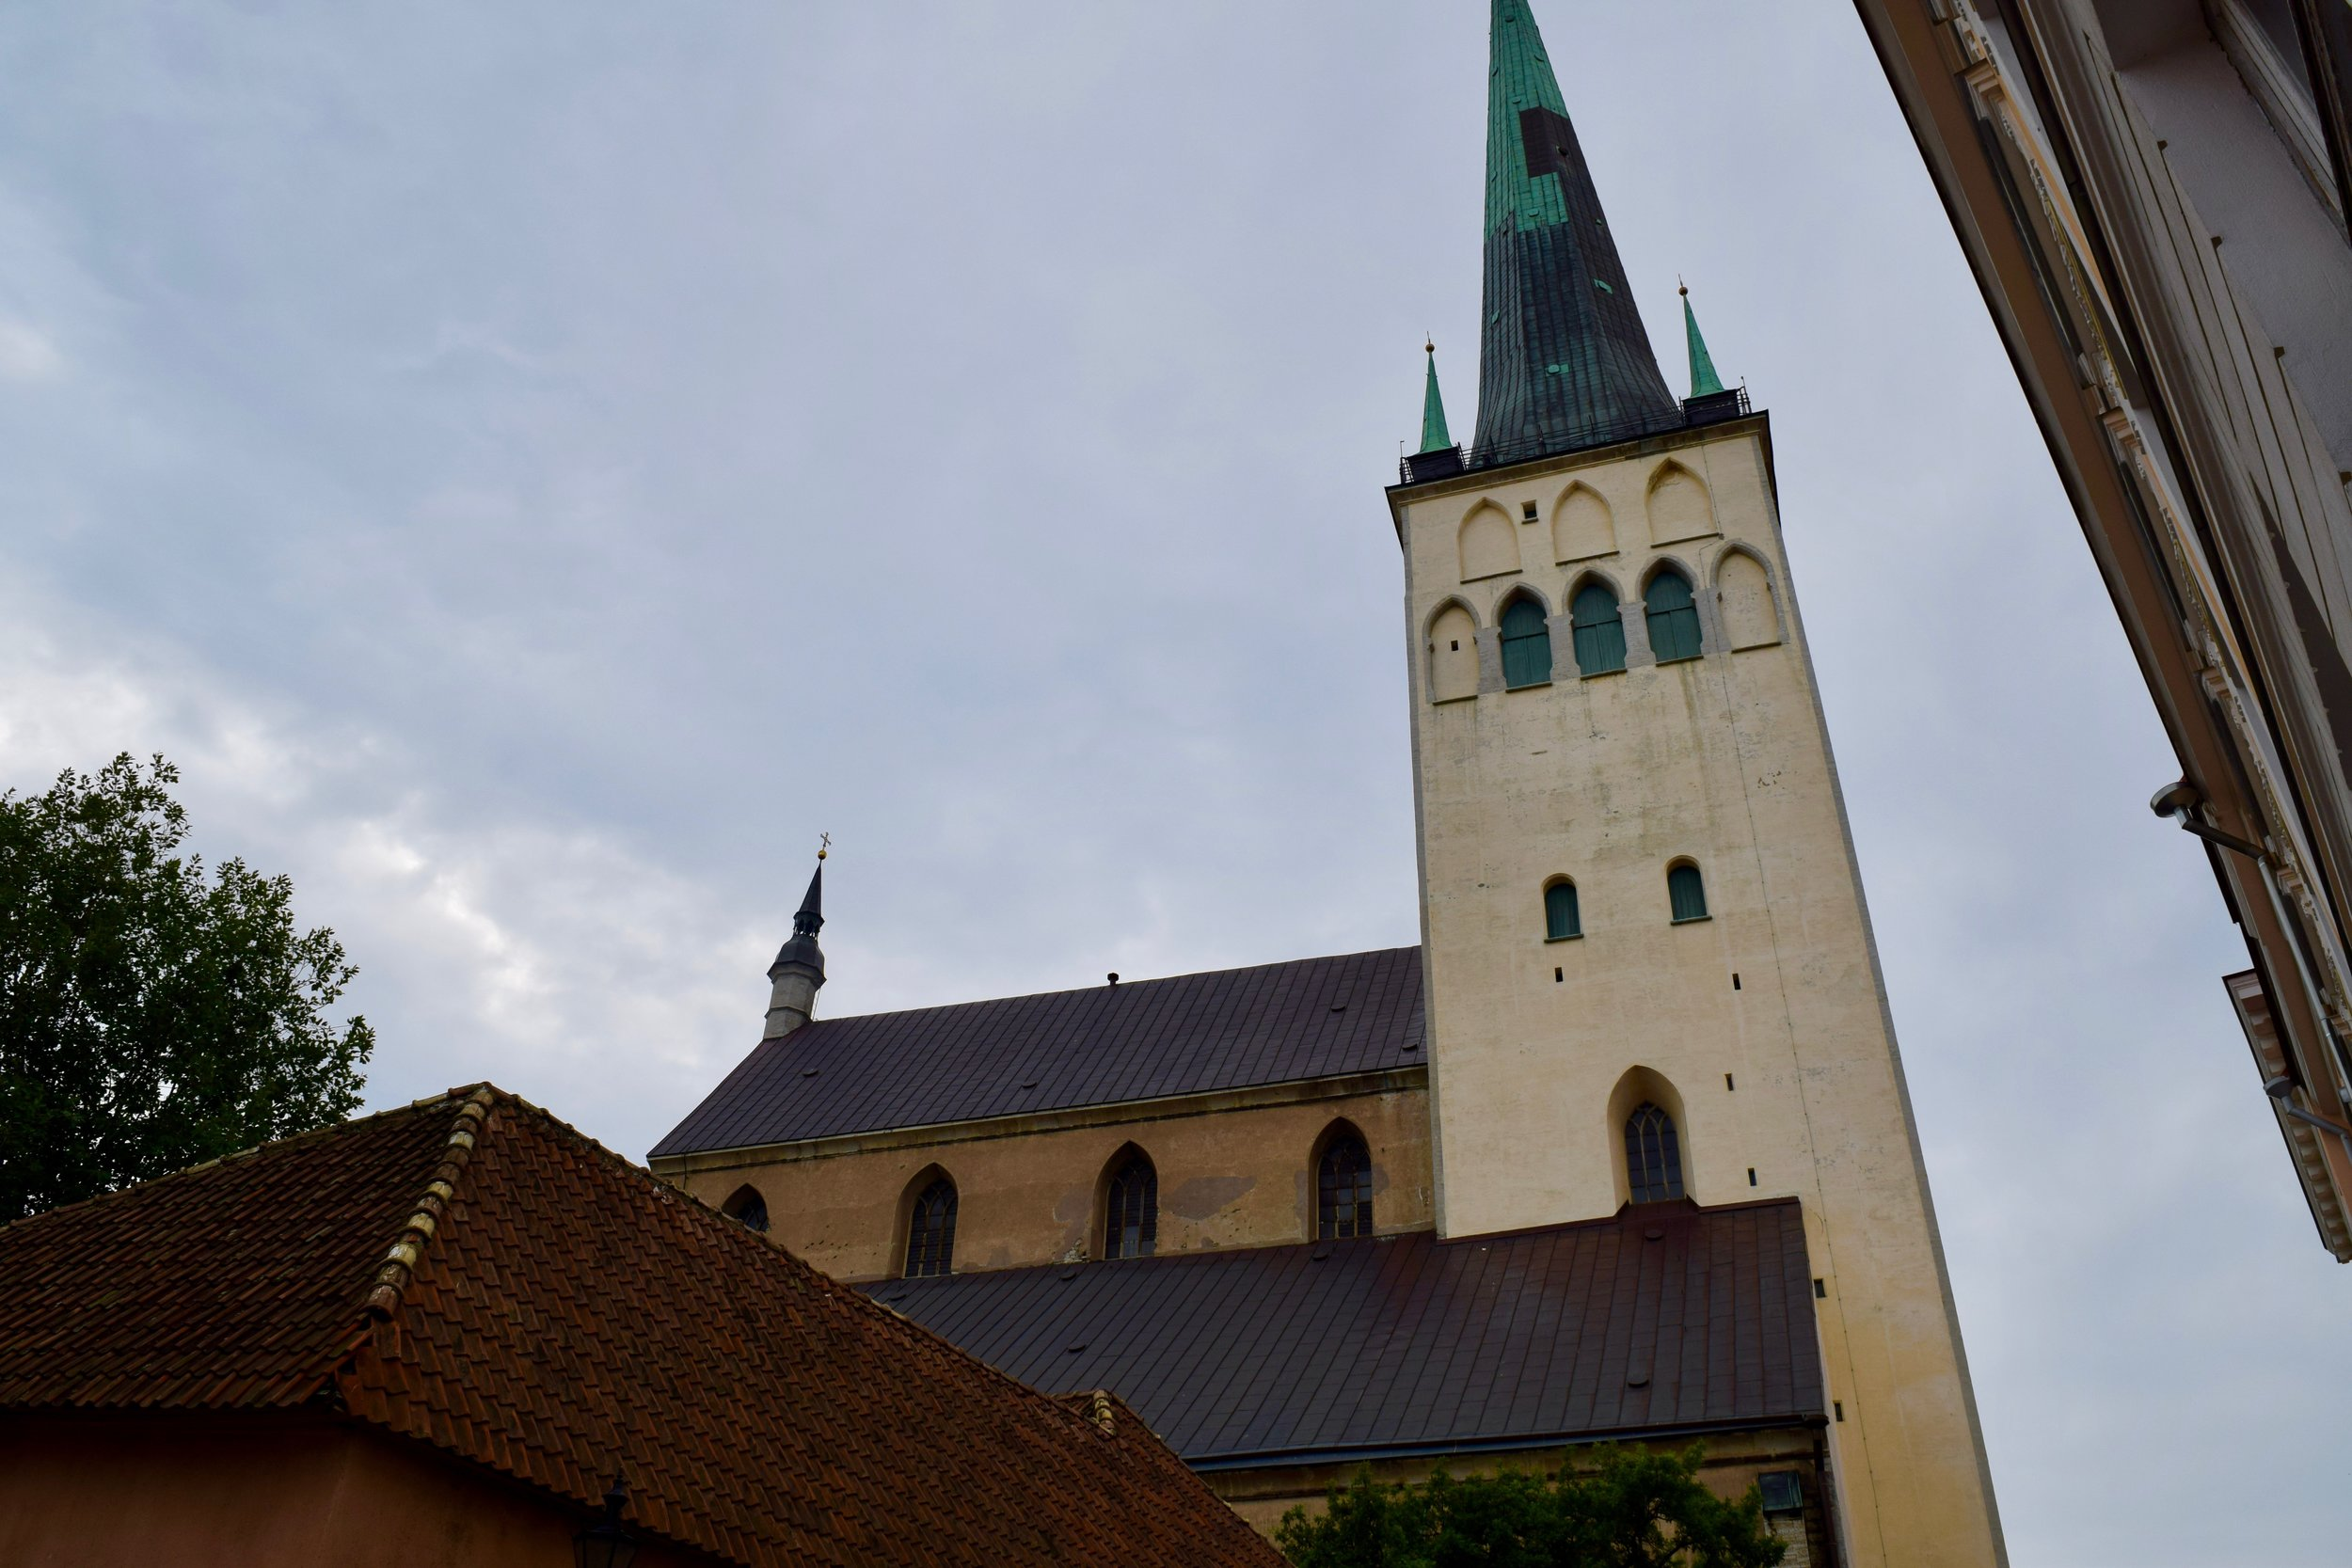 St. Olaf's Church